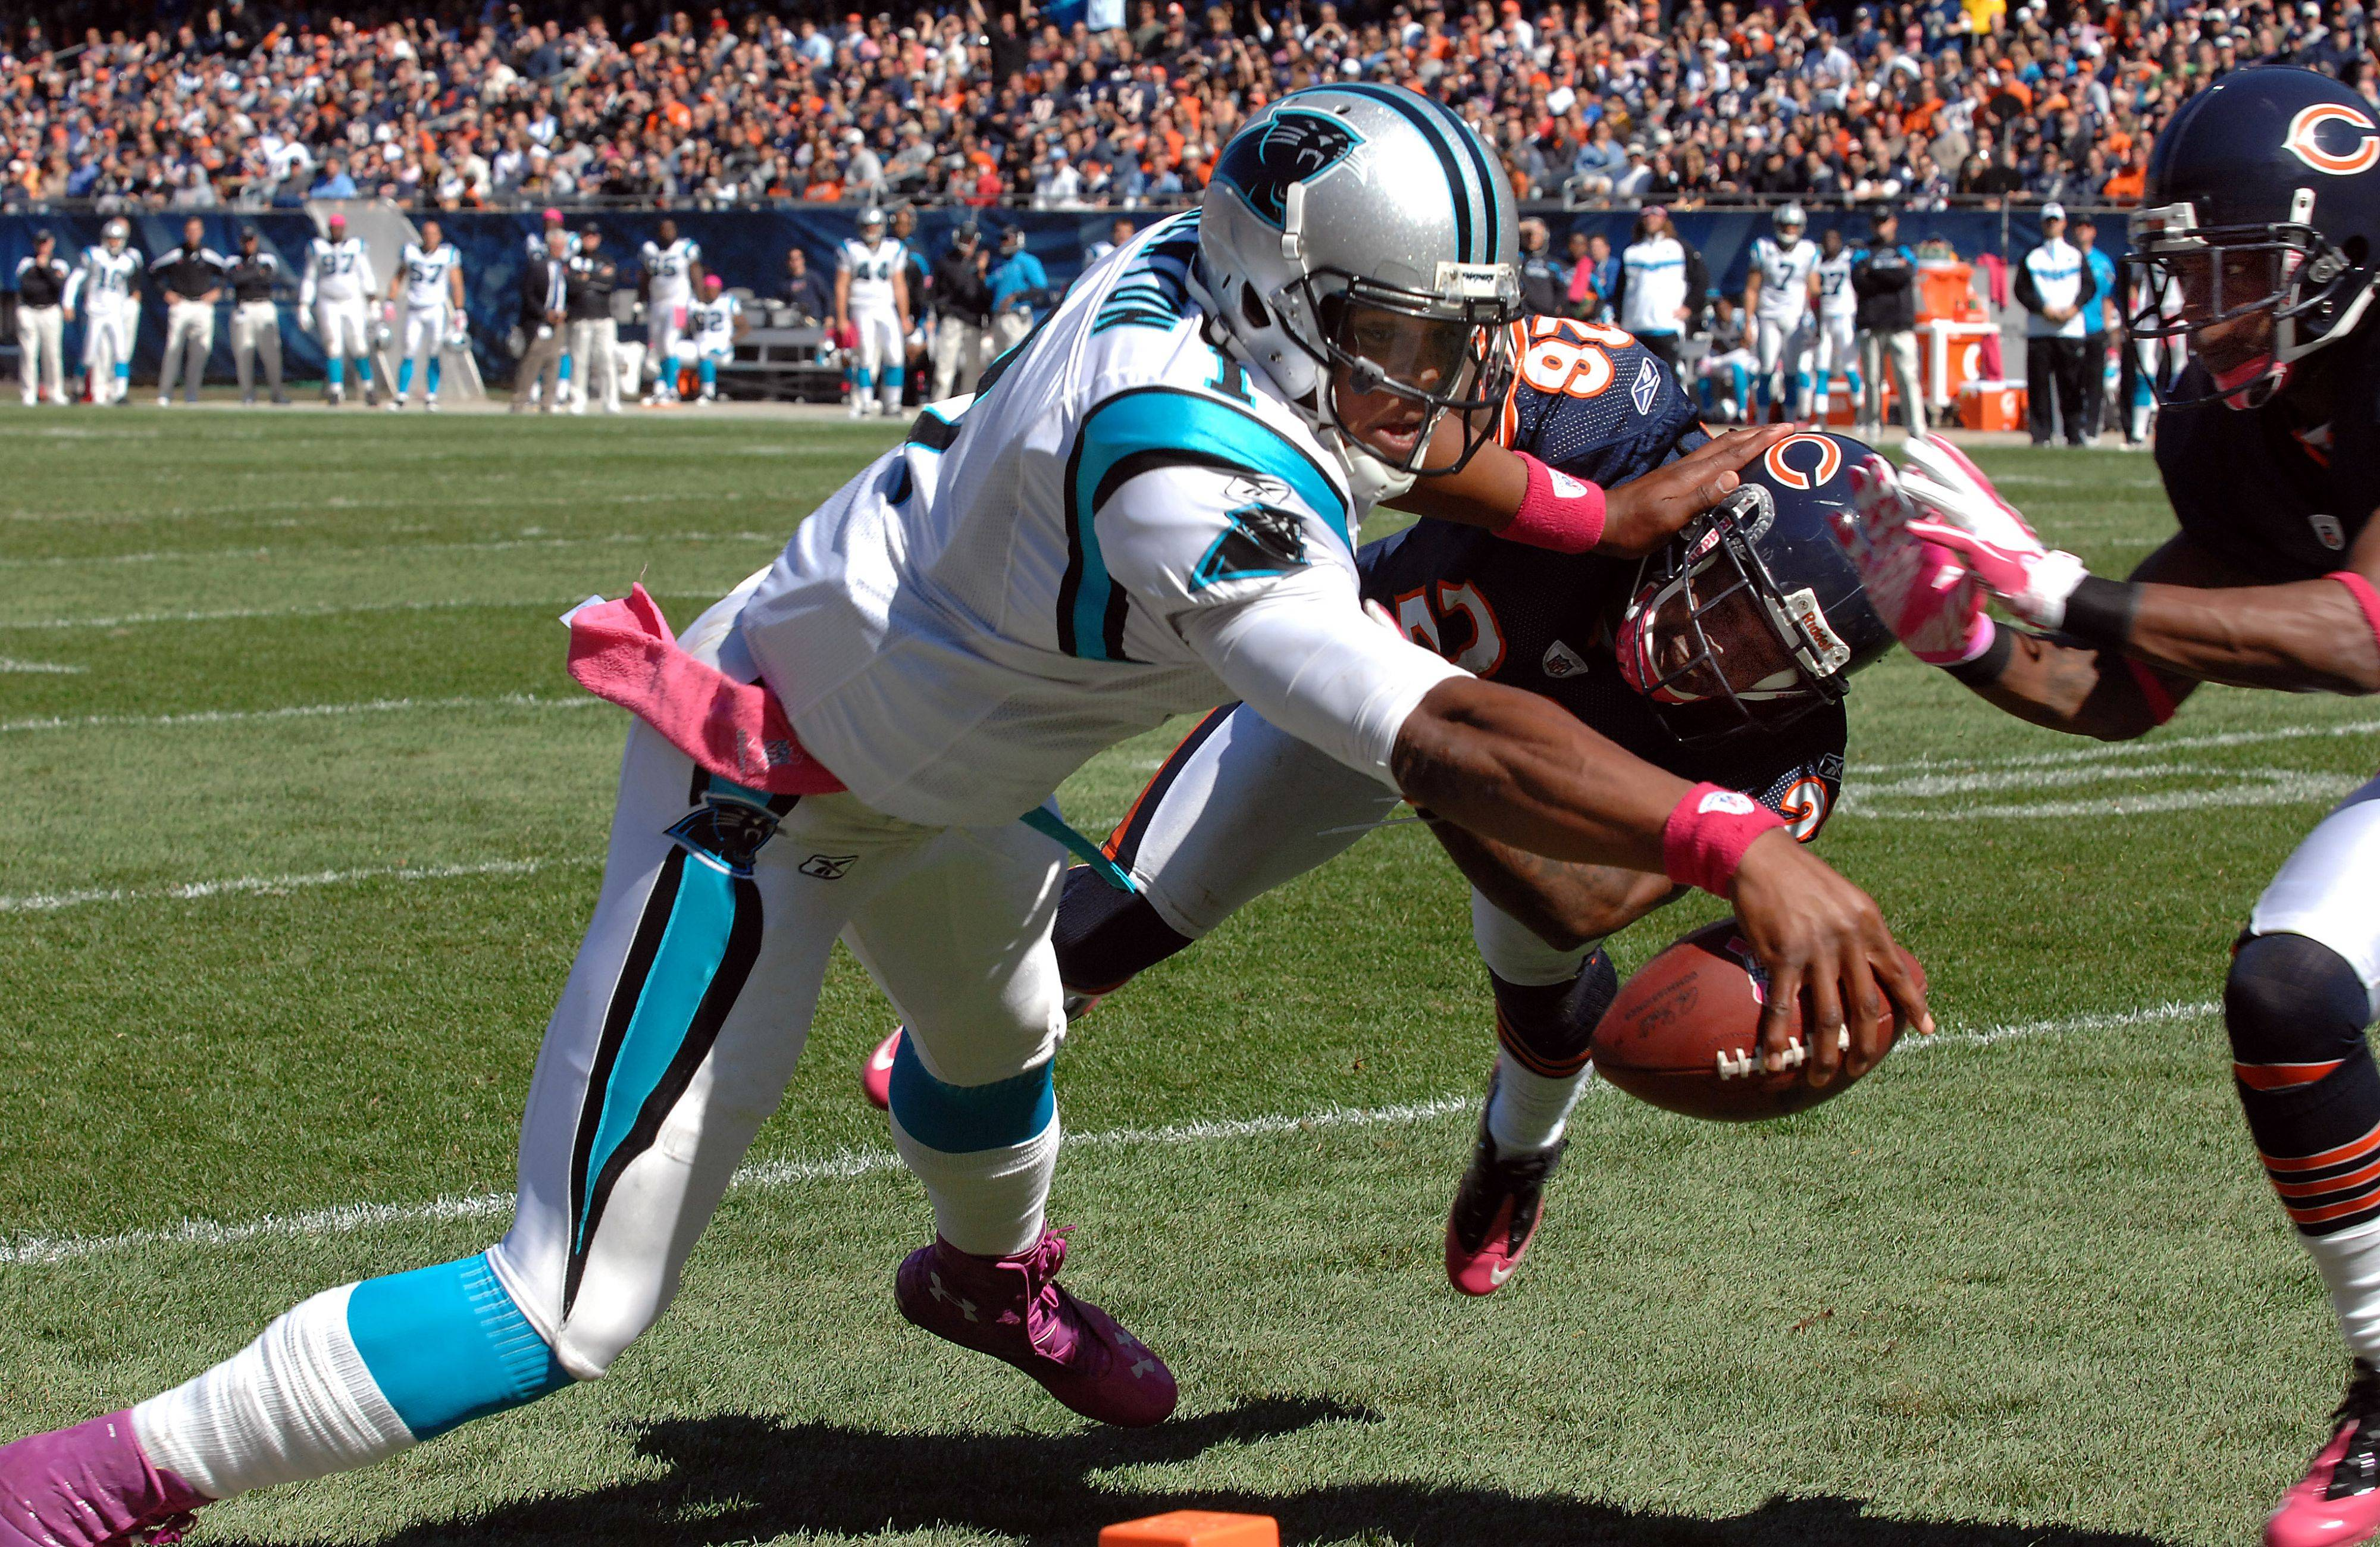 Panthers quarterback Cam Newton pushes away the Bears' defense Sunday as he scores a first-quarter touchdown.